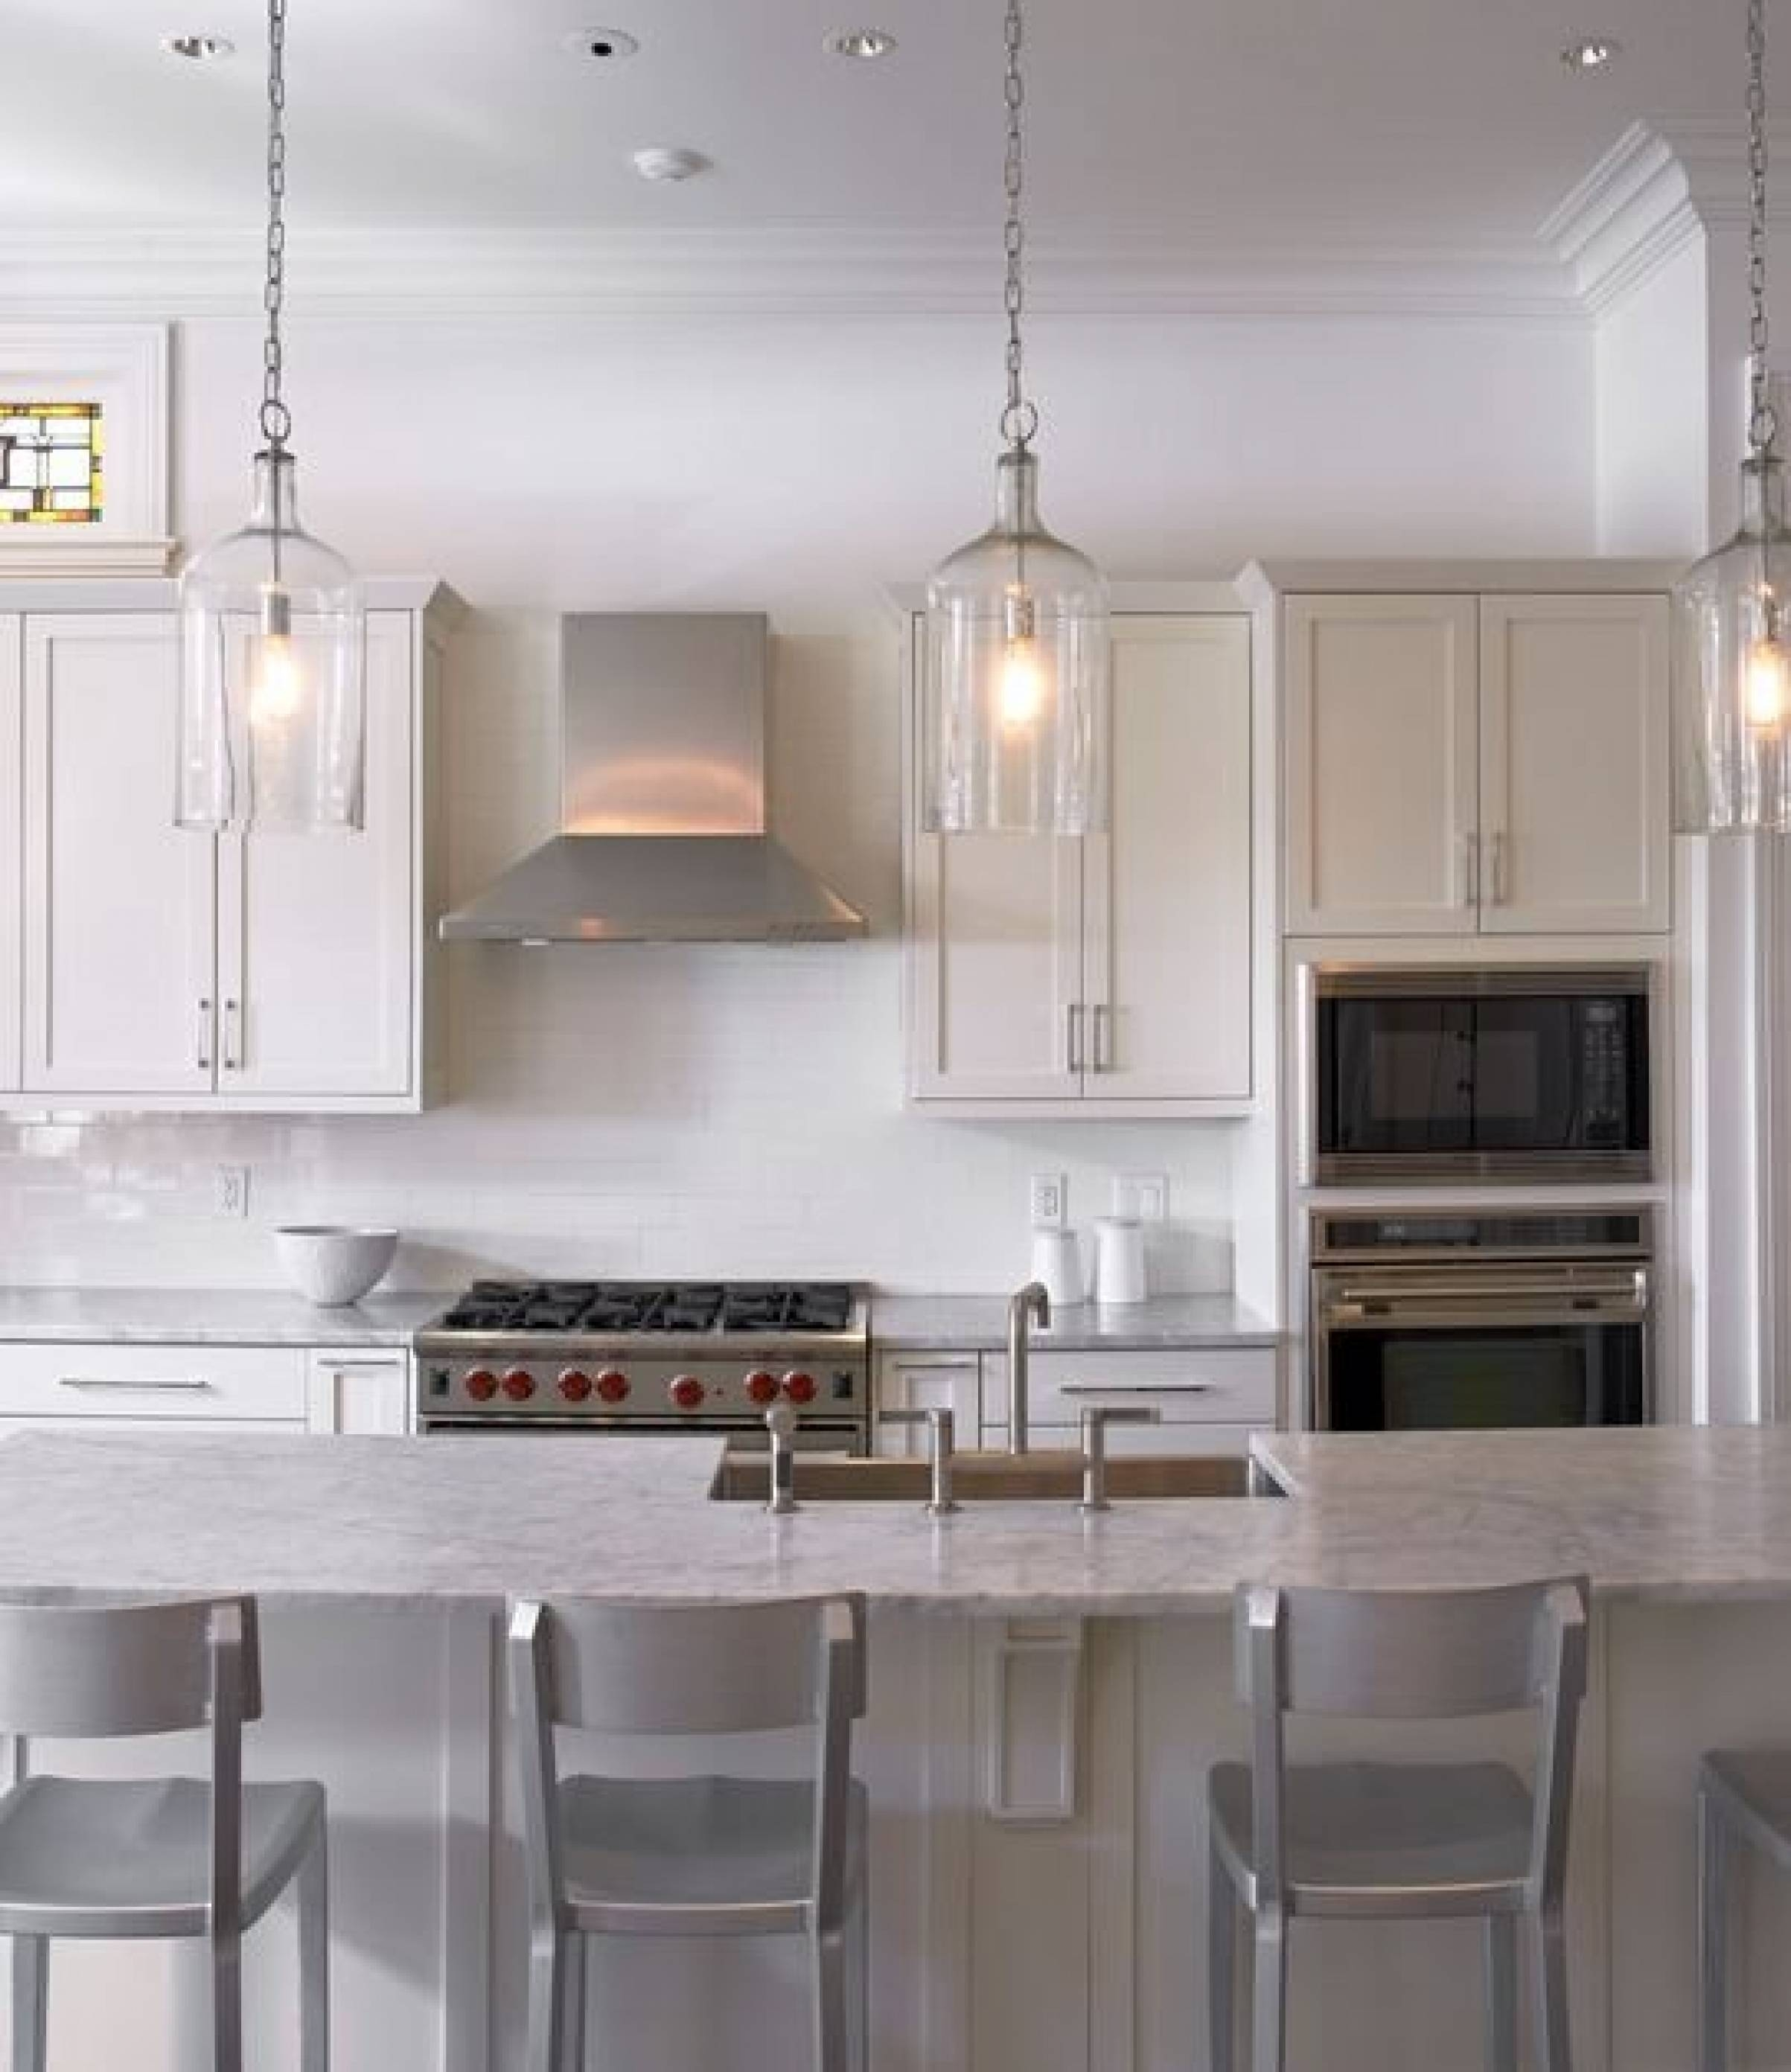 Kitchen : Glass Kitchen Pendants Copper Pendant Light Hanging Throughout Island Pendant Light Fixtures (View 5 of 15)